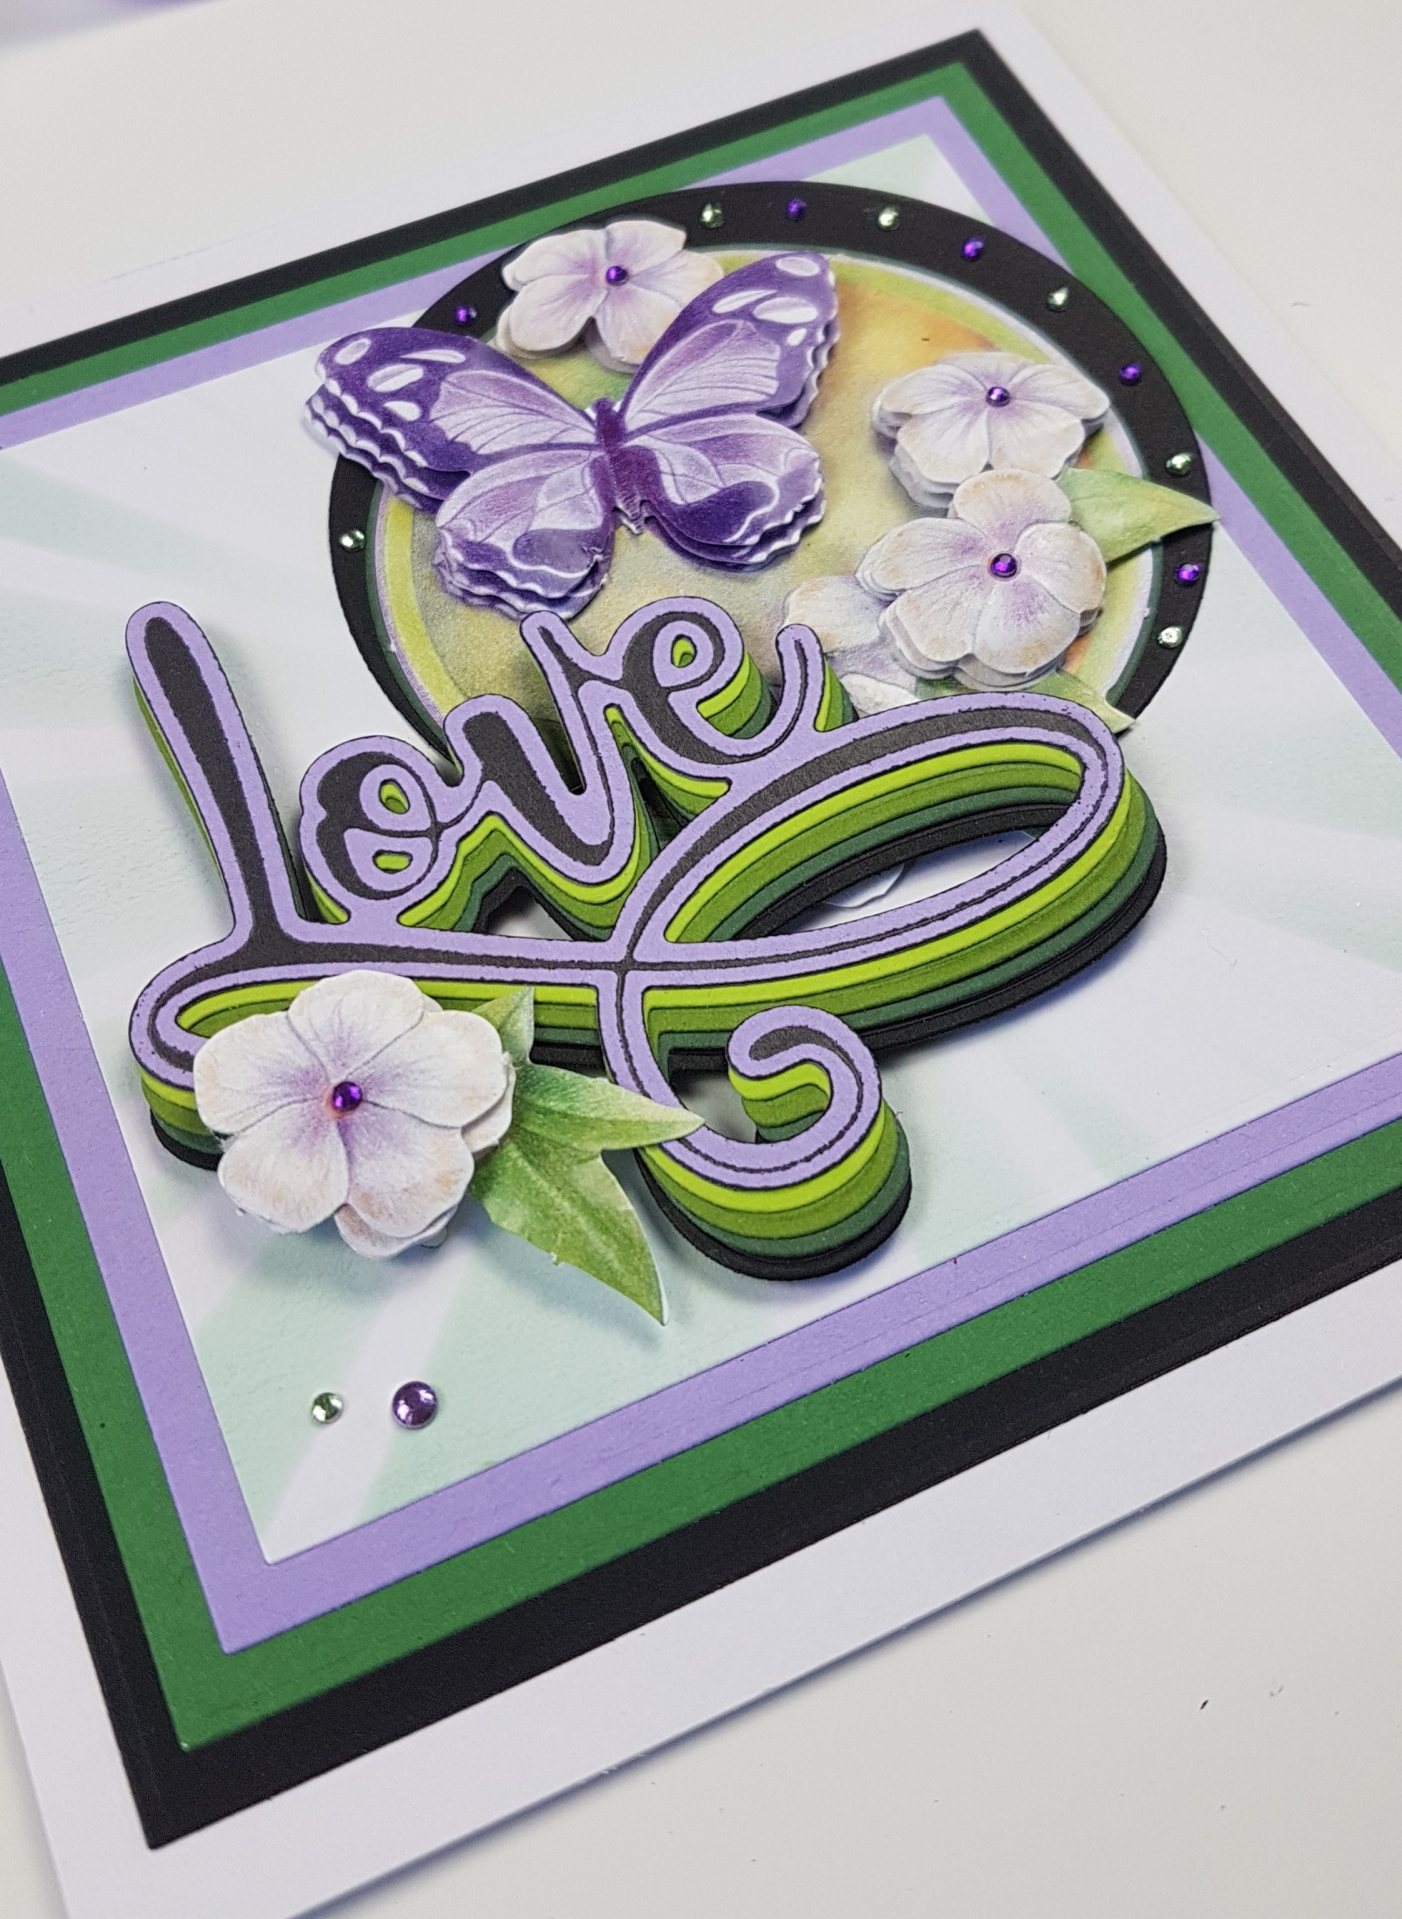 How To Use Embossing Powders With Hot Foil Stamps and Dies